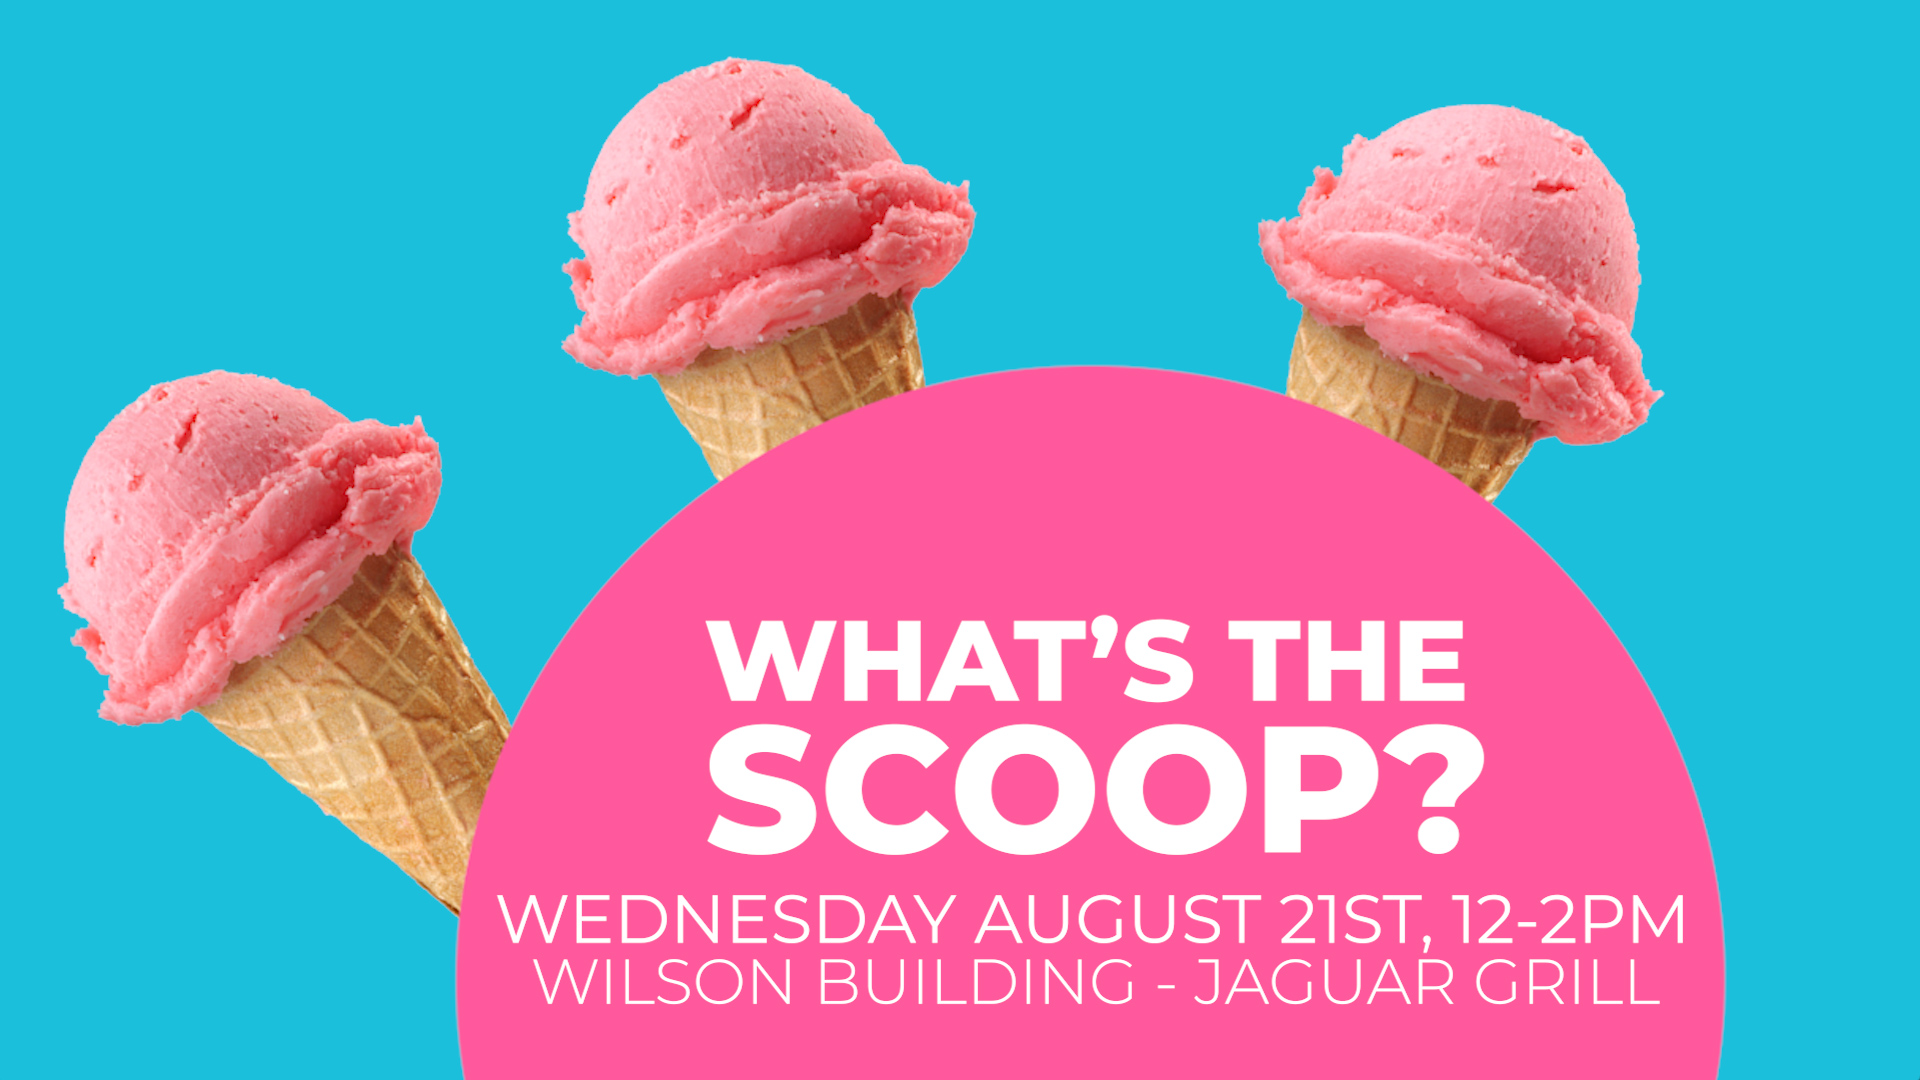 What's the scoop? Wednesday August 21st, 12-2pm. Wilson Building - Jaguar Grill